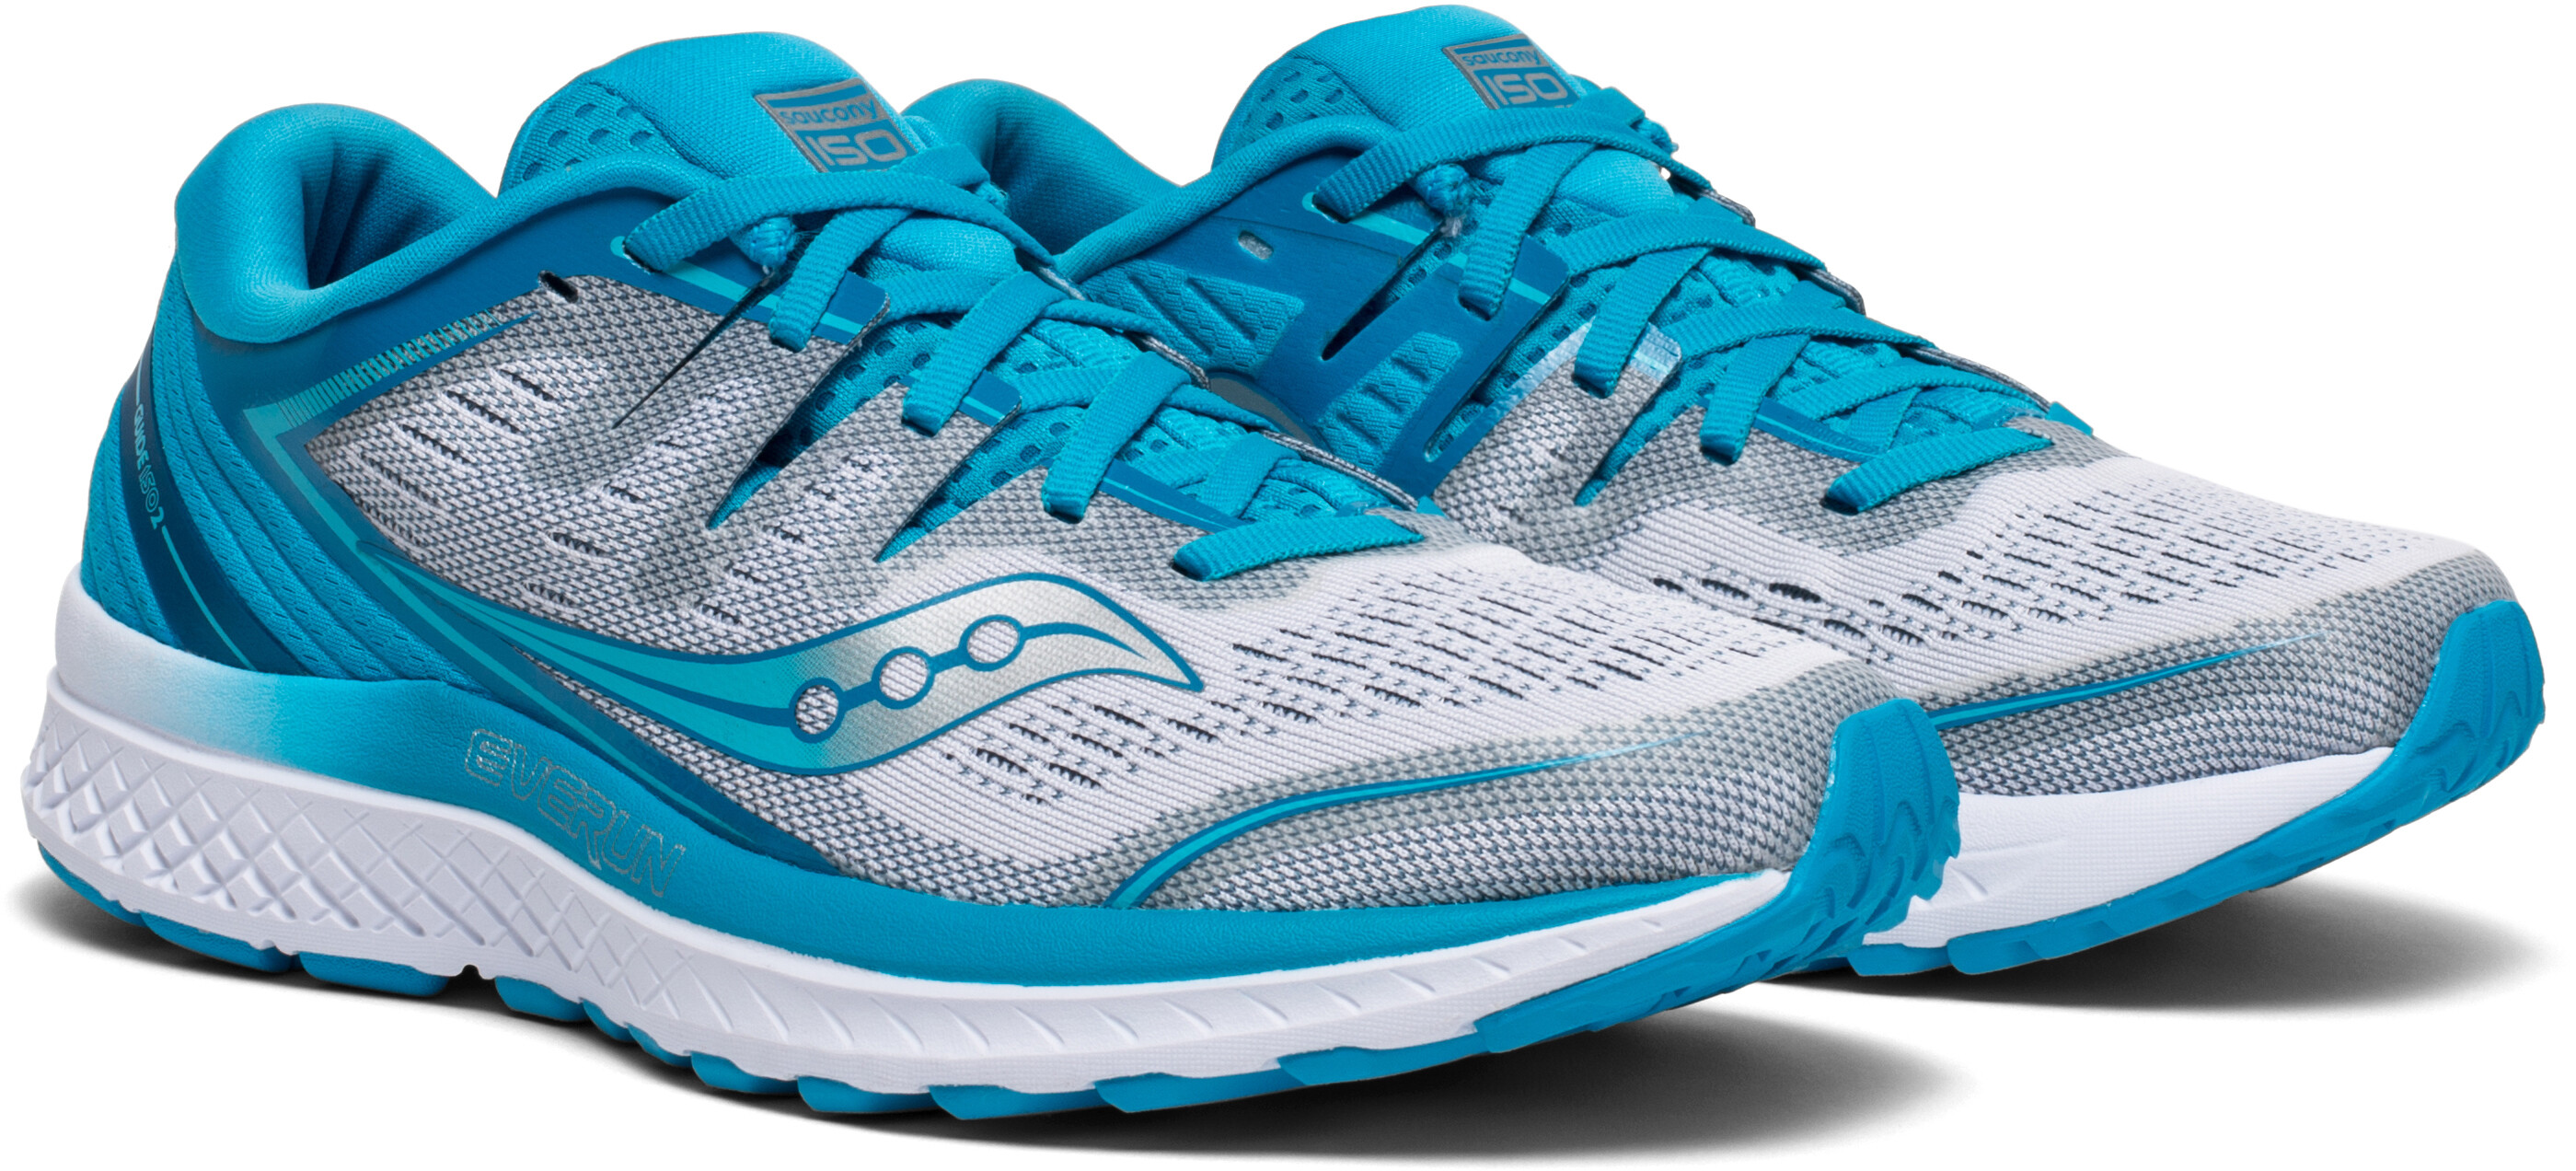 f246c859d96 Saucony Guide Iso 2 Running Shoes Women Blue White At Bikester Co Uk